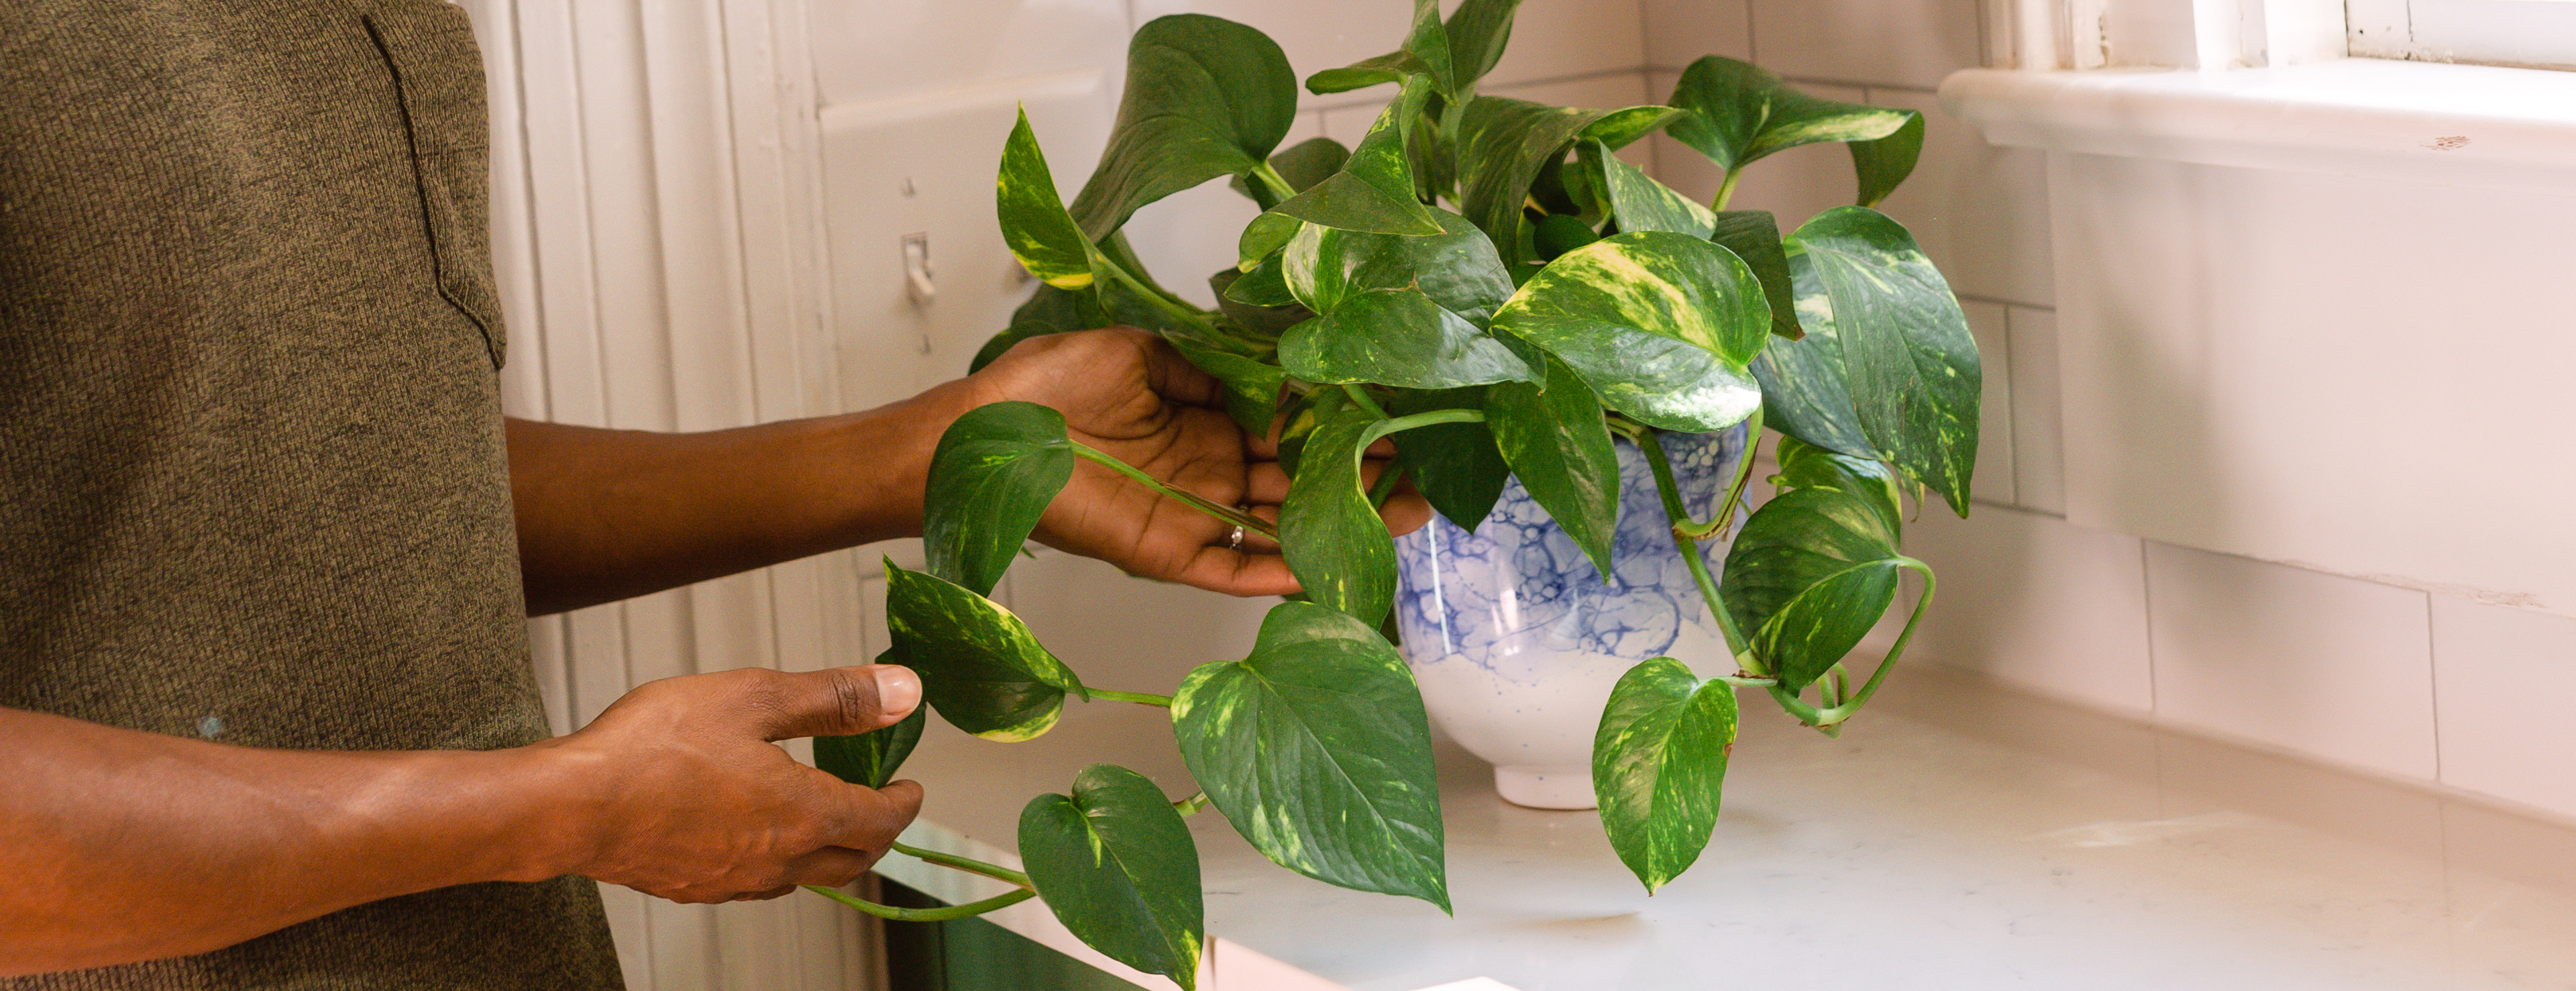 Hands holding leaves of pothos plant